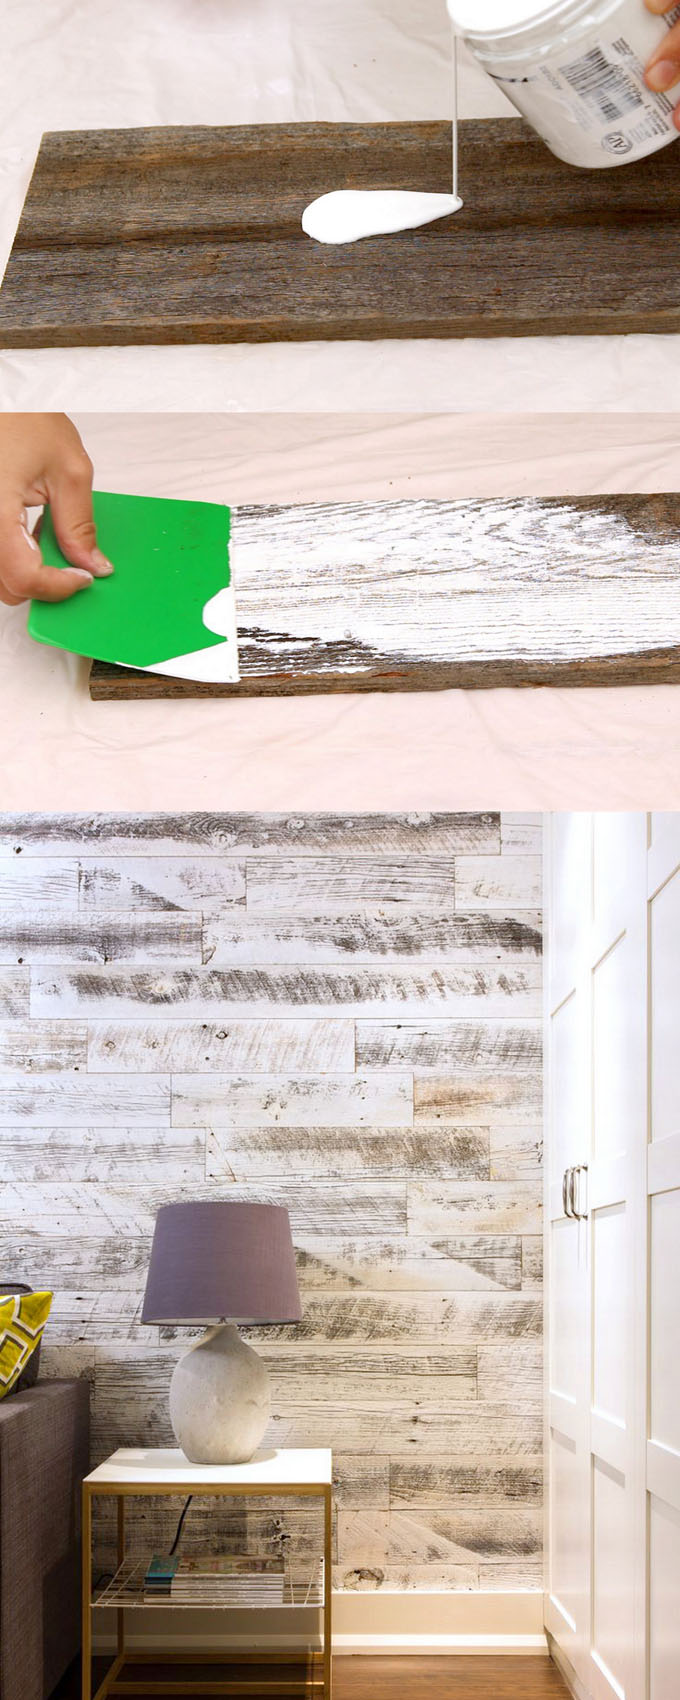 how-to-whitewash-wood-3-ways-ultimate-guide-apieceofrainbow-5